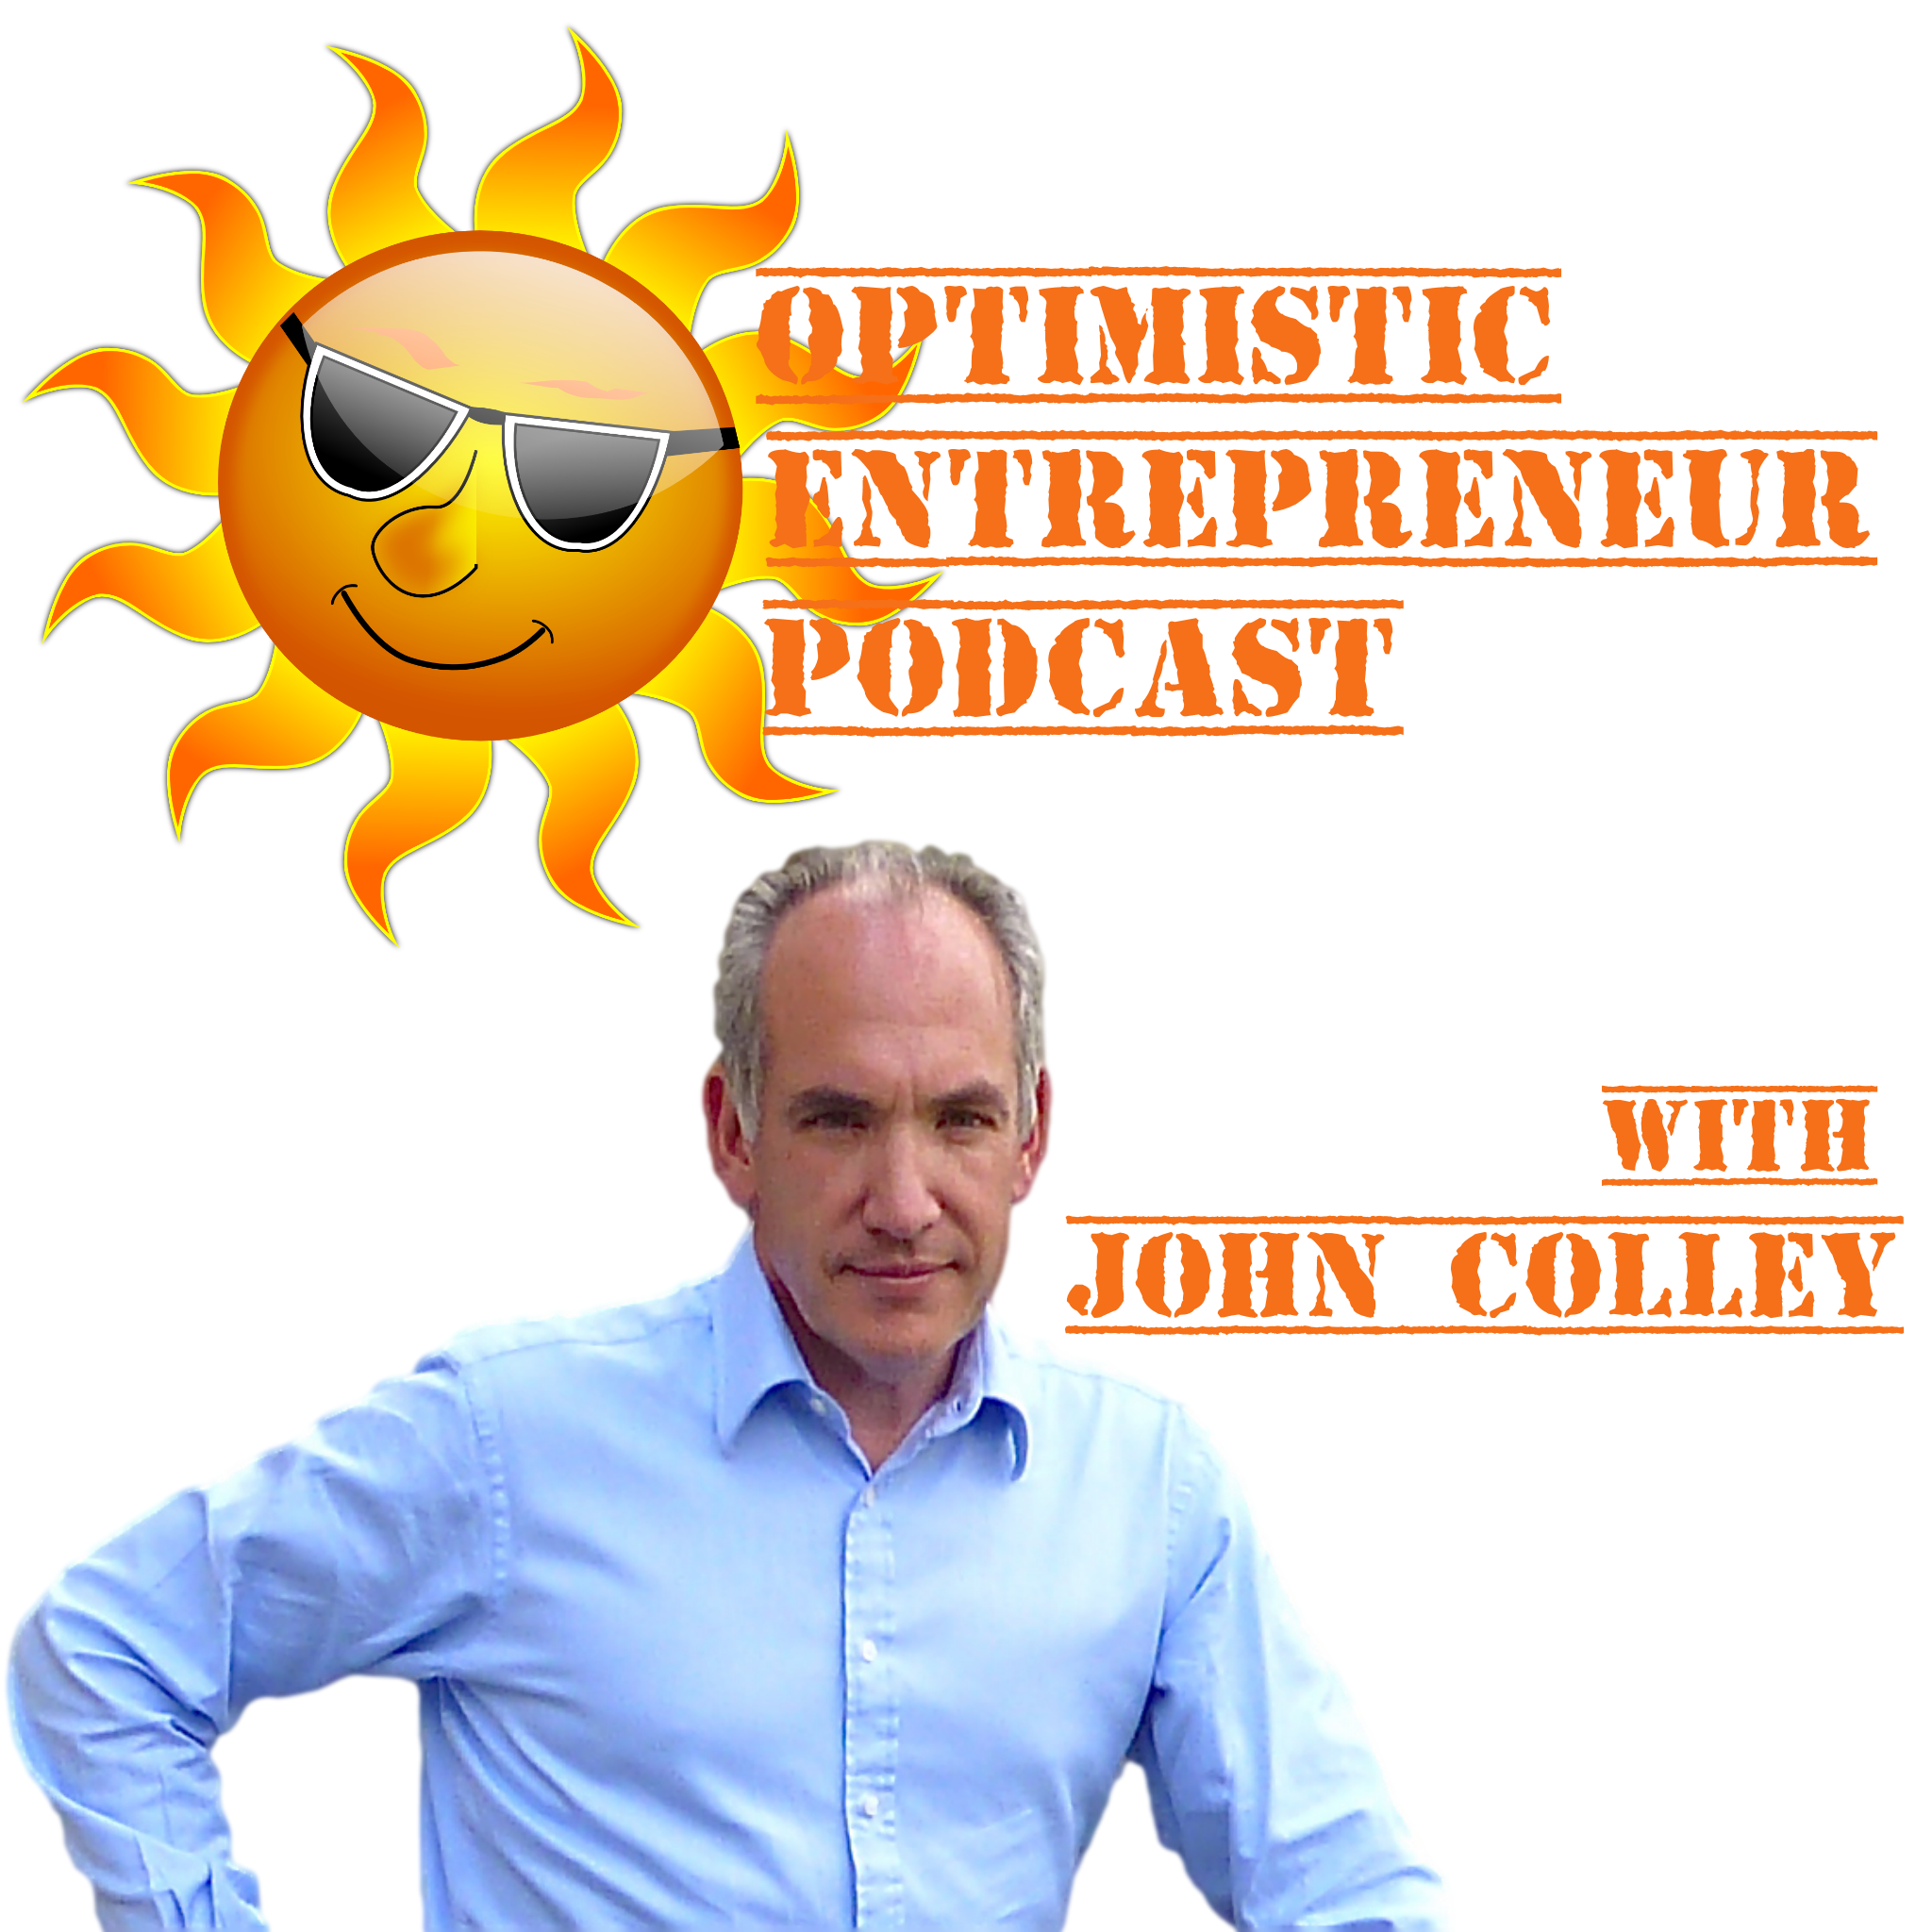 Optimistic Entrepreneur Podcast Episode 2